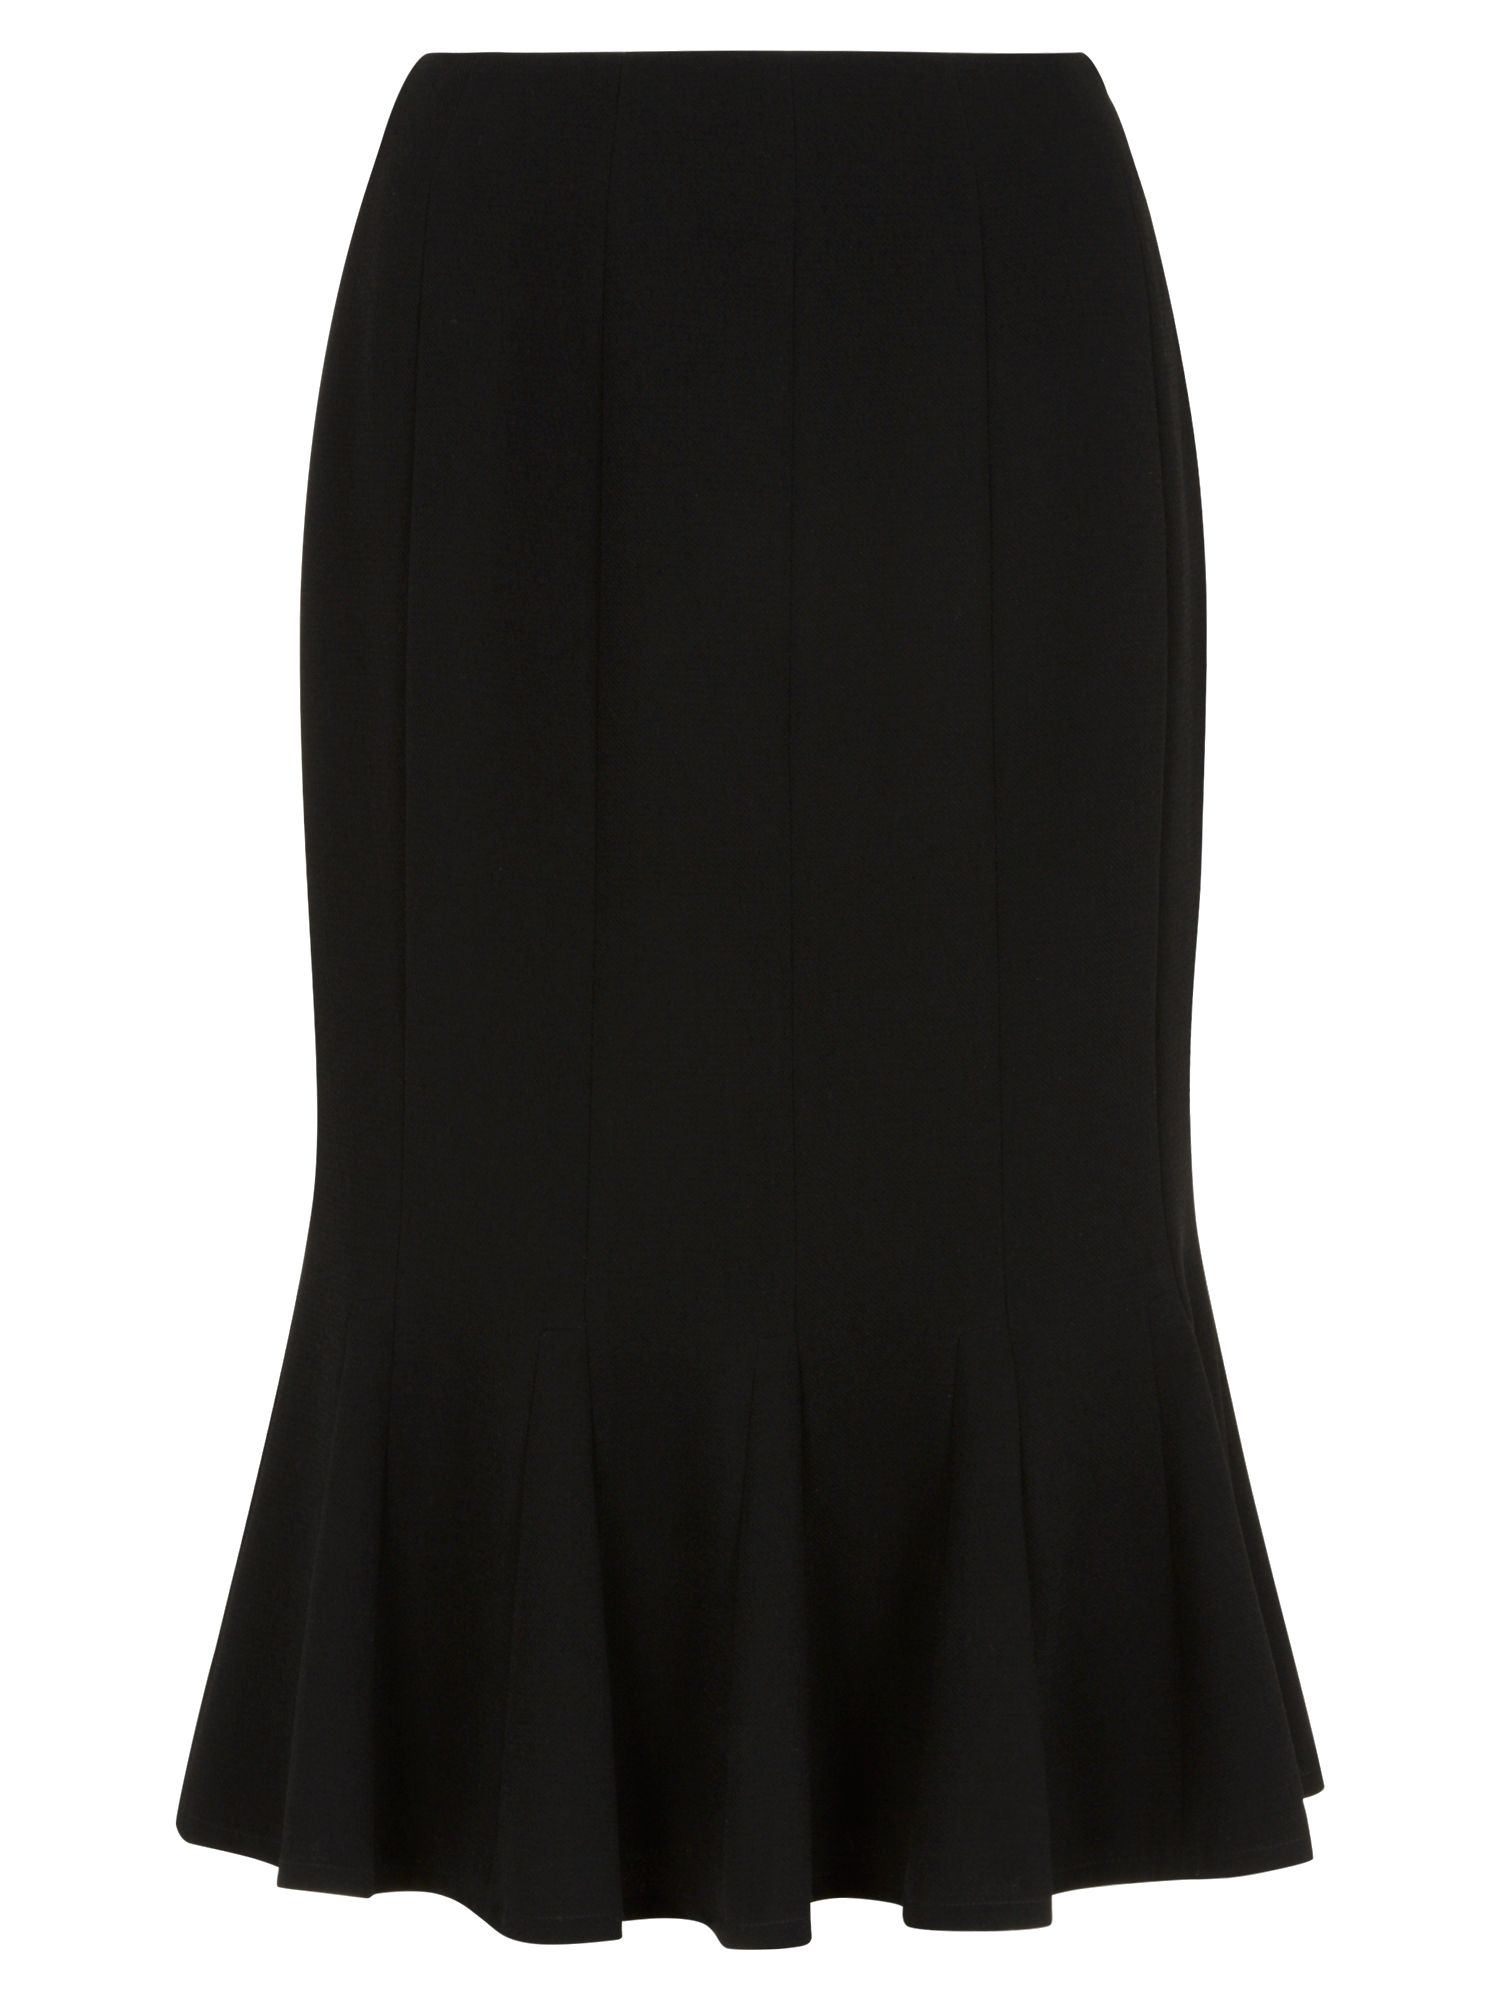 Black fit & flare skirt